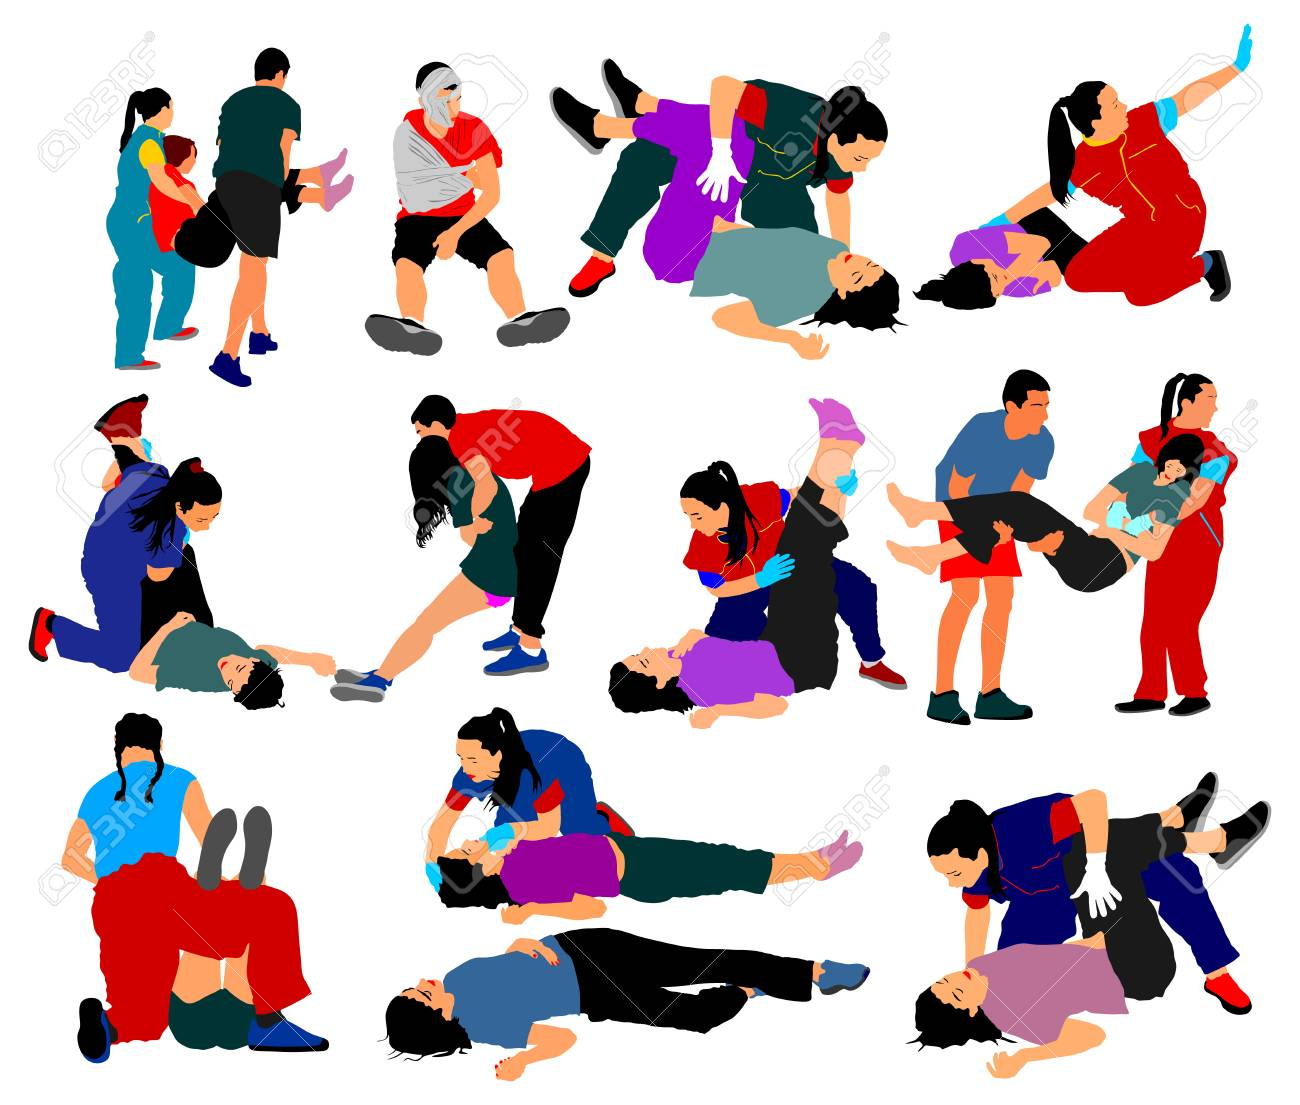 Drowning situation, first aid vector illustration, big group. Patients help drunk person overdose after party. Sneak attack victim damage cpr rescue team victim of fire evacuation and earthquake hurt. - 93338939